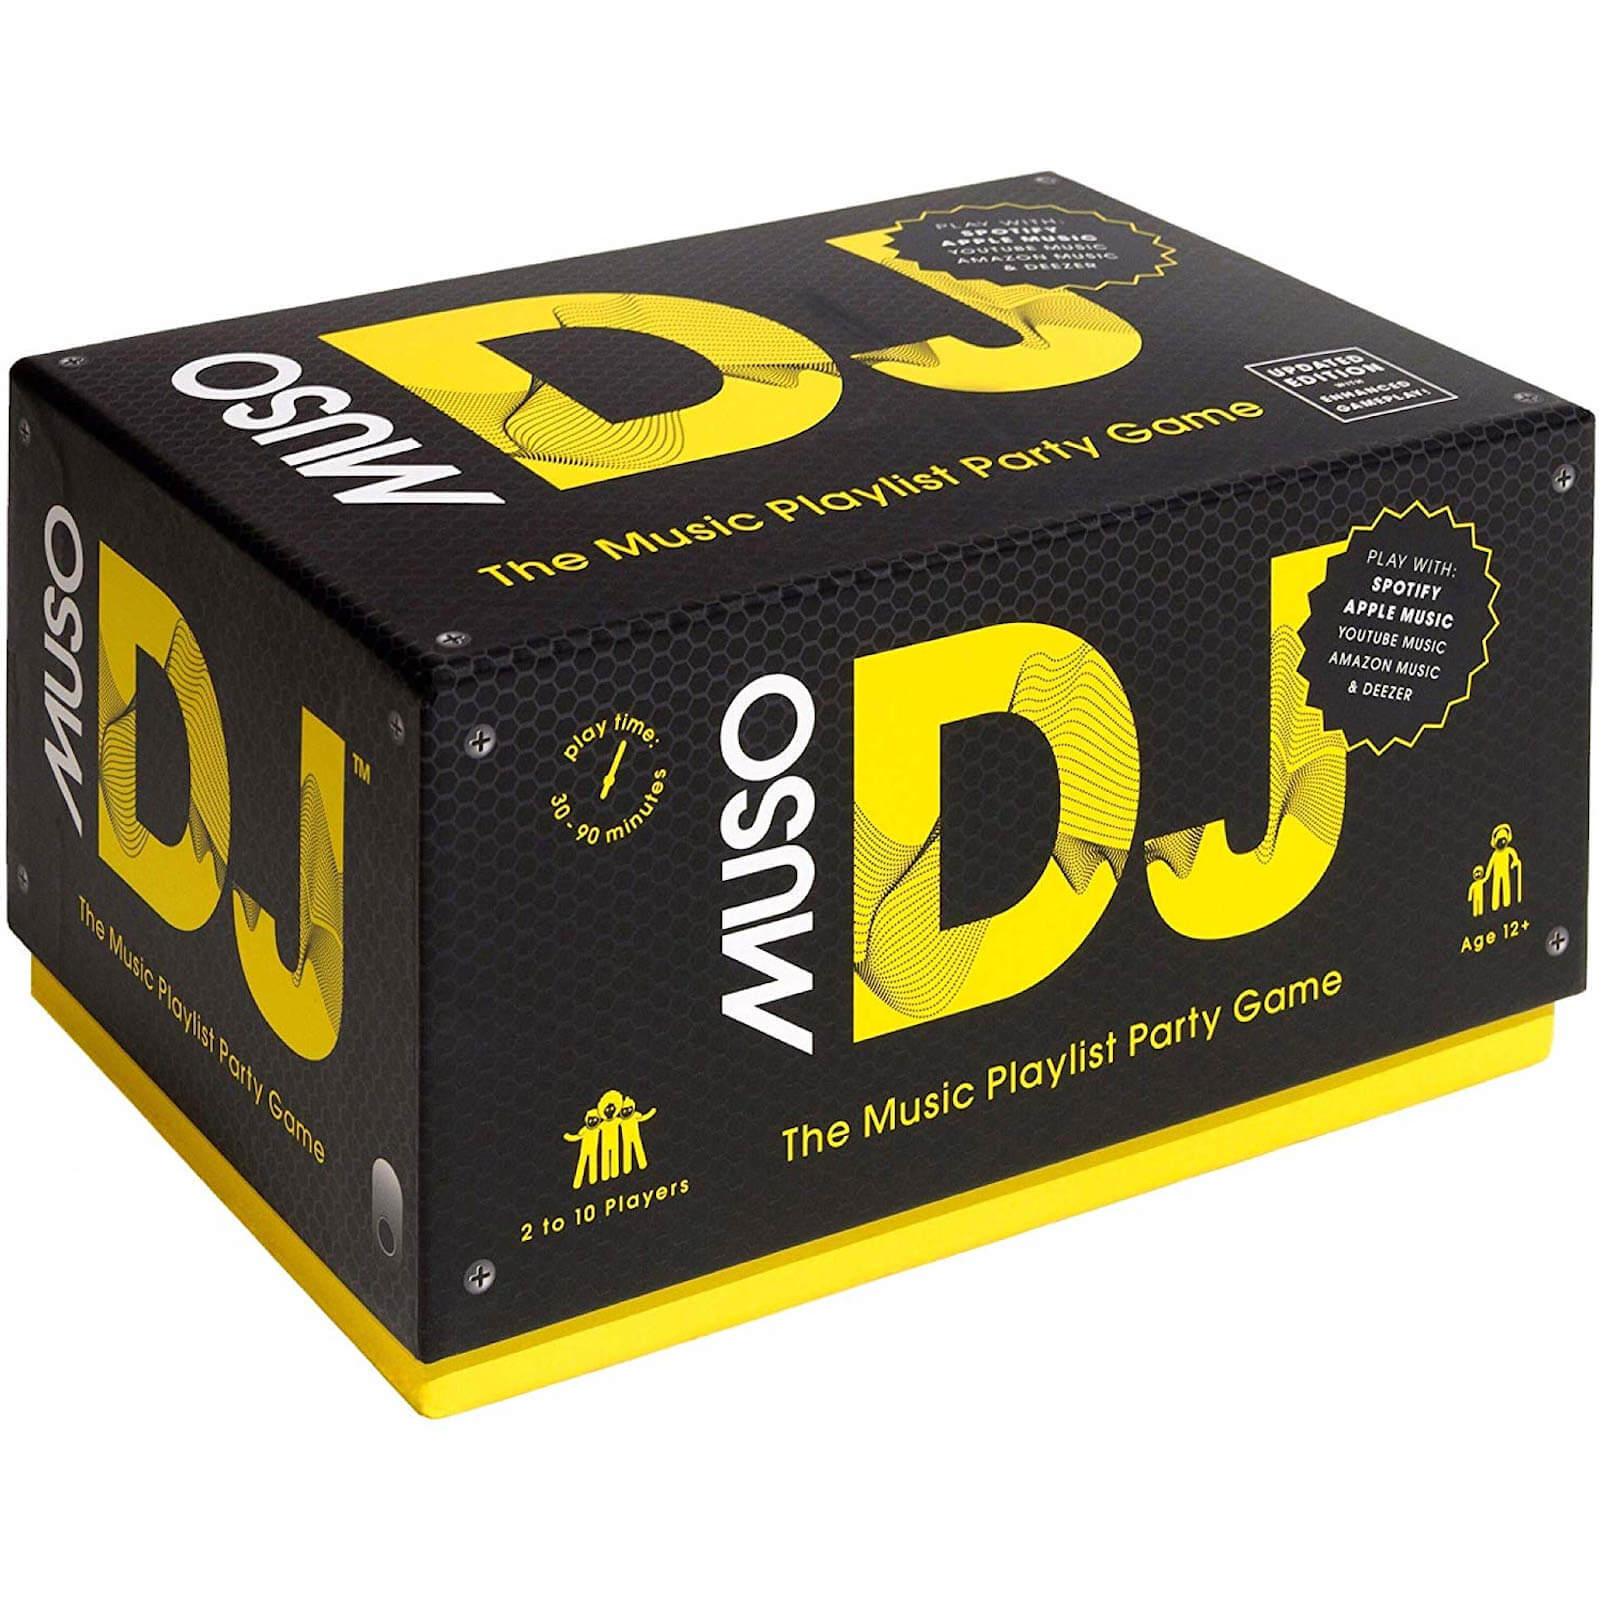 Image of Muso DJ 2 Card Game